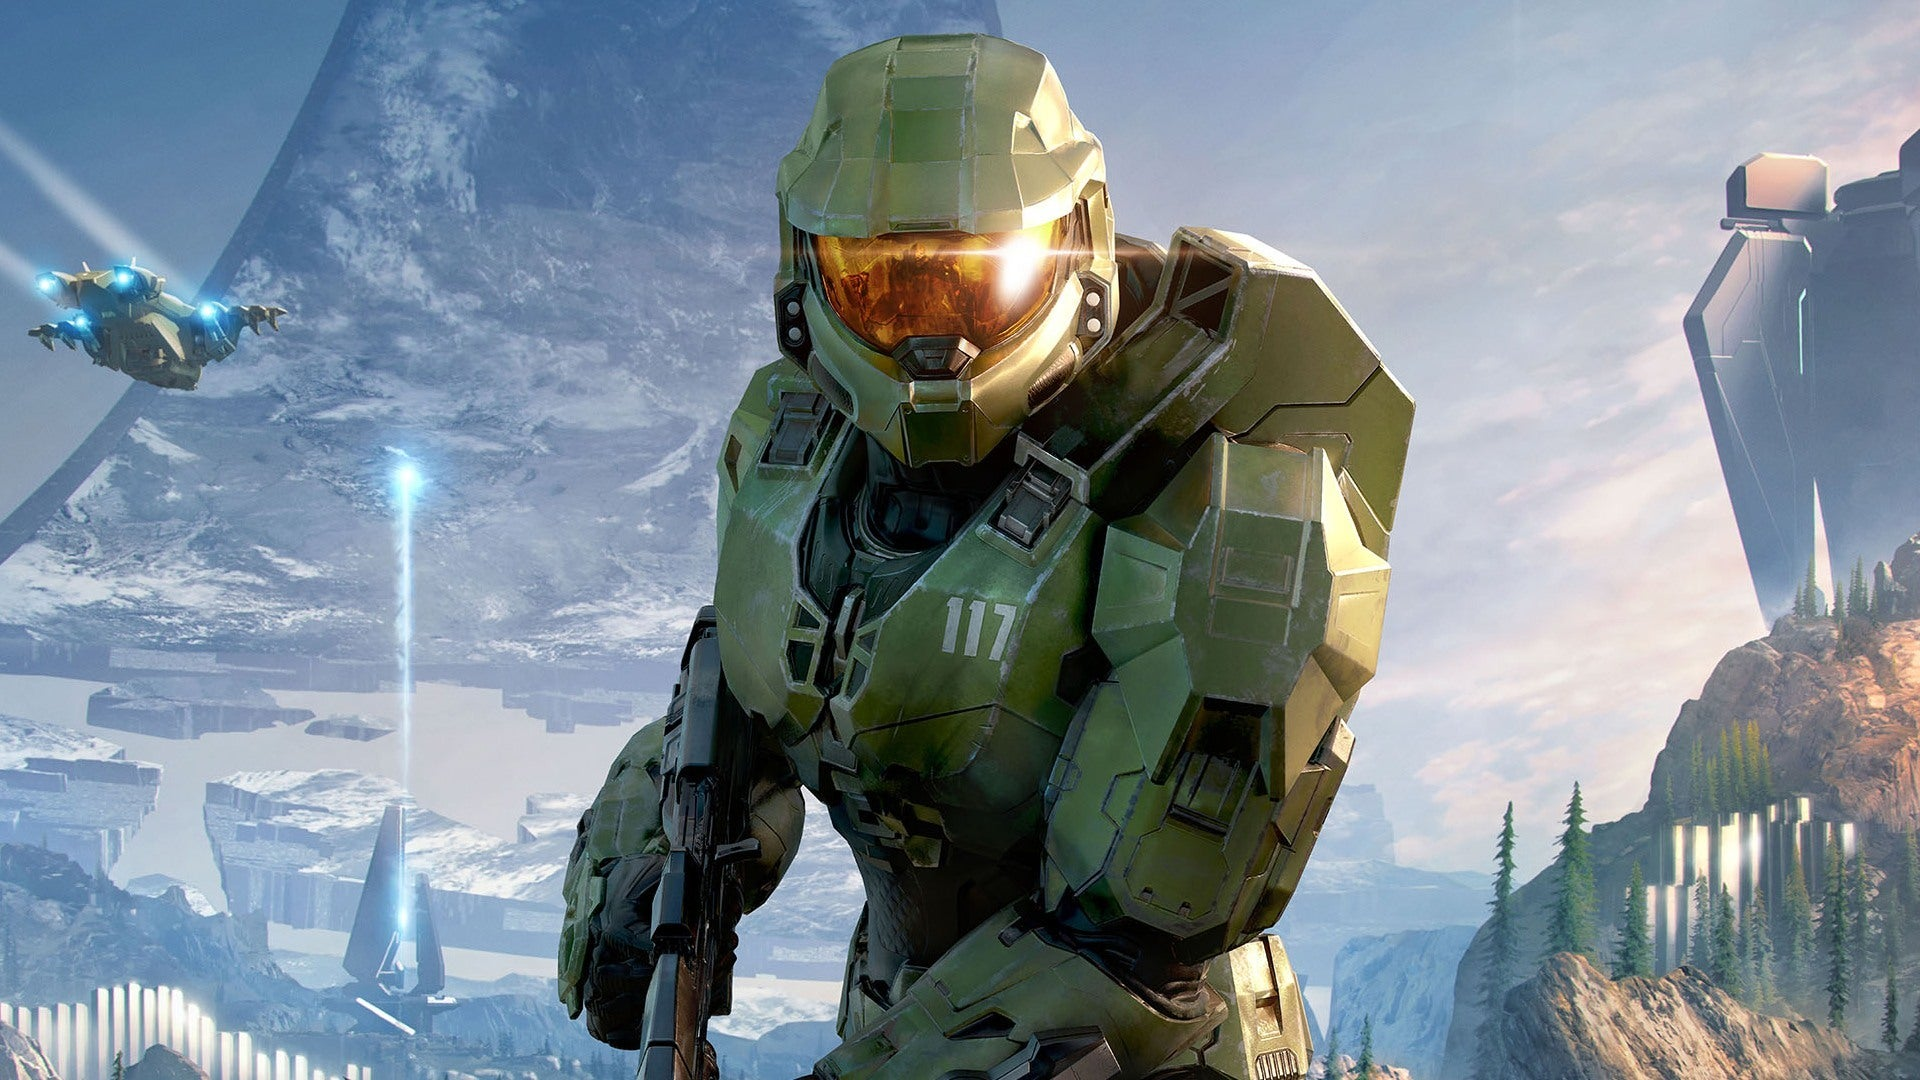 Master Chief motion actor hints at Halo Infiniterelease date